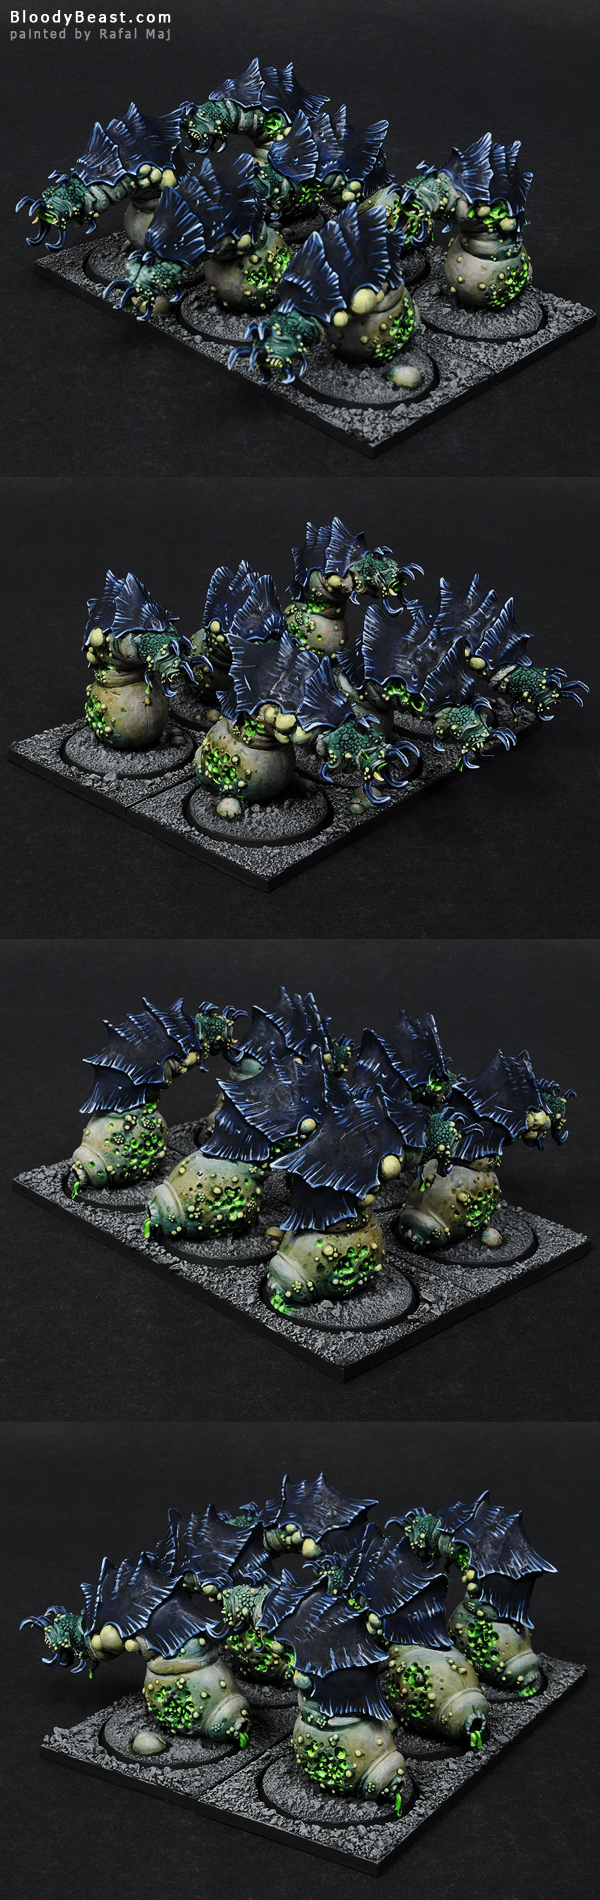 Beasts of Nurgle Unit painted by Rafal Maj (BloodyBeast.com)